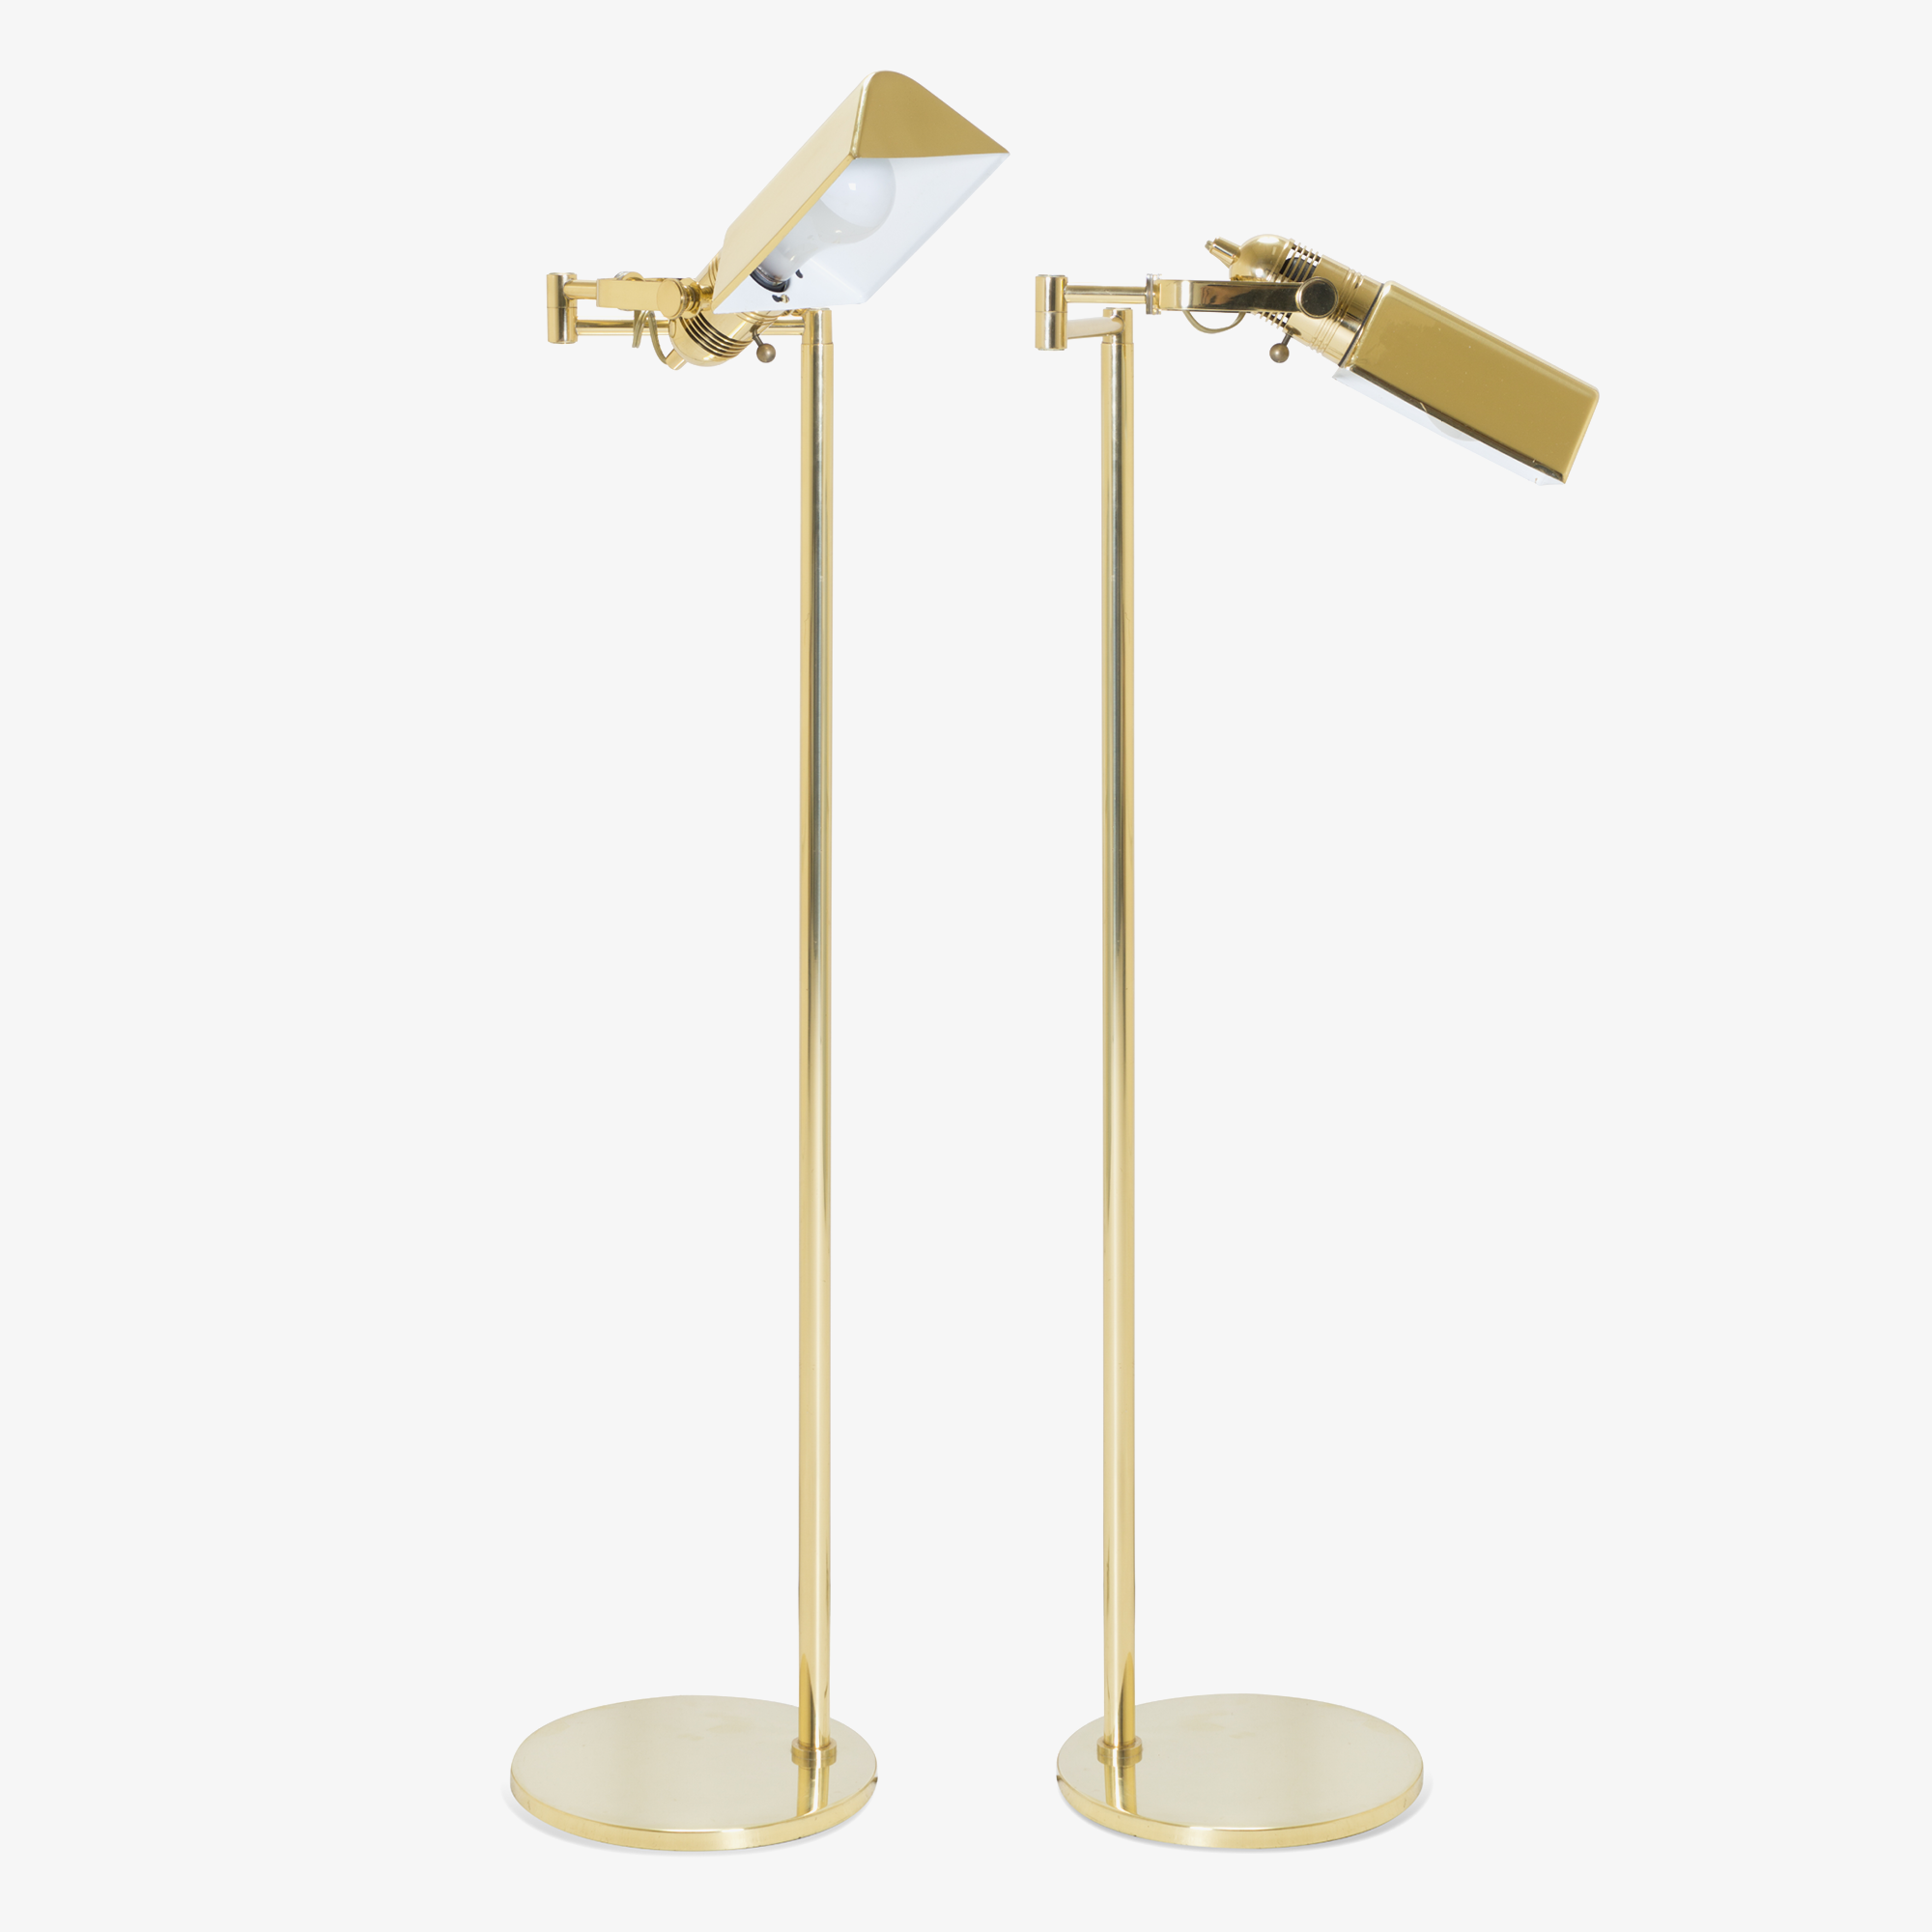 Brass Reading Lamps by Nessen, Pair2.png